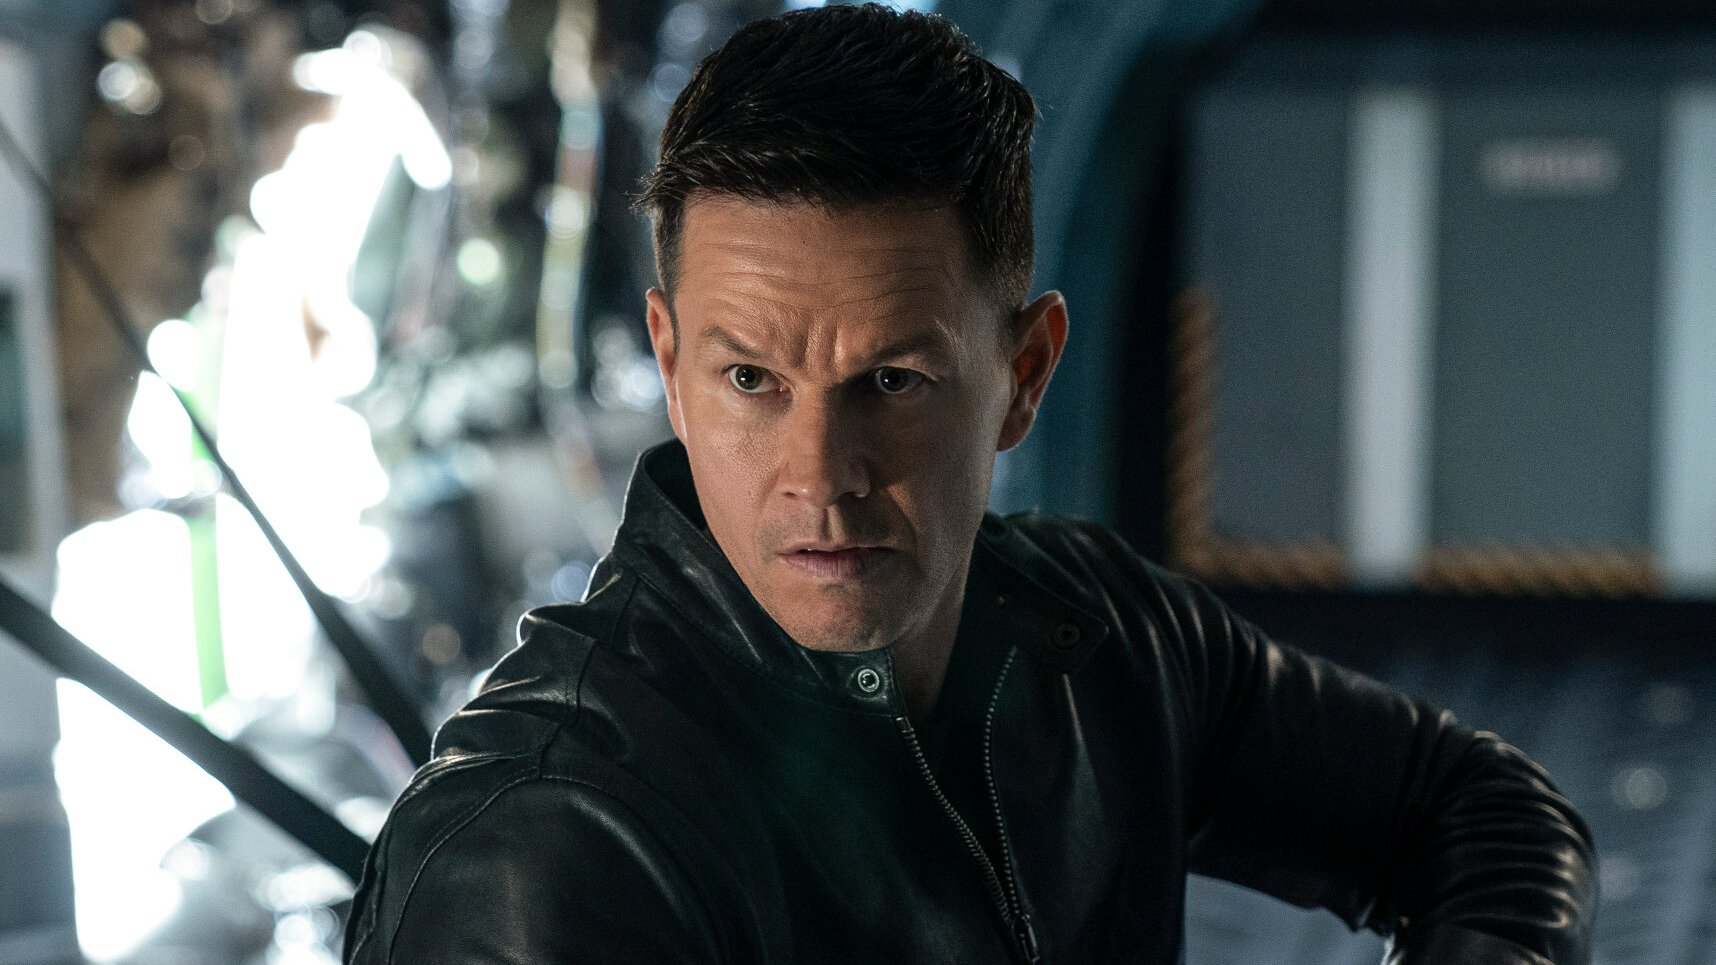 A Mark Wahlberg Sci-Fi Movie And Other Titles Dominating On Streaming - cover